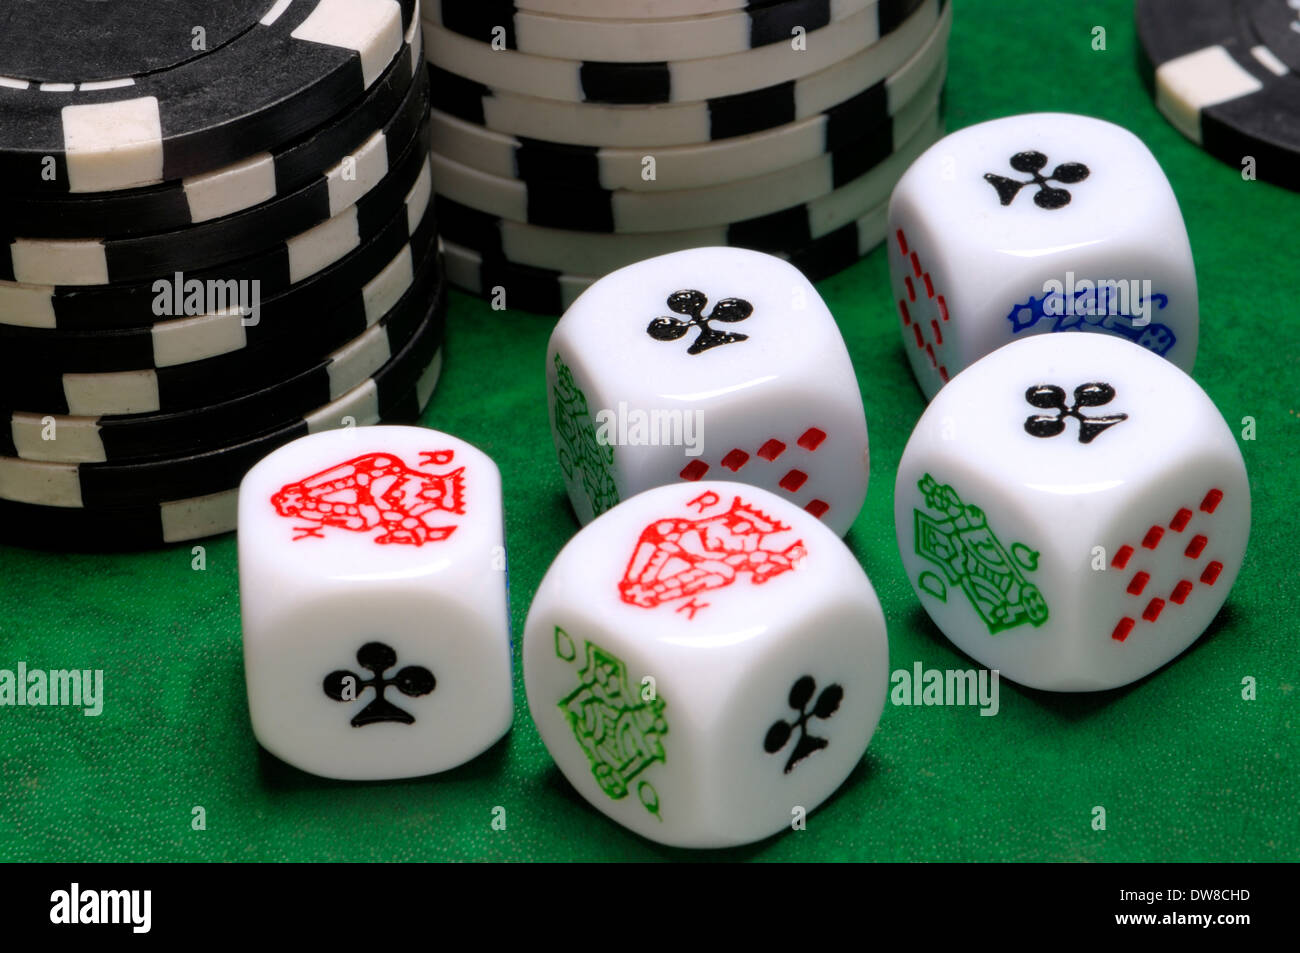 Poker dice and betting chips - Stock Image